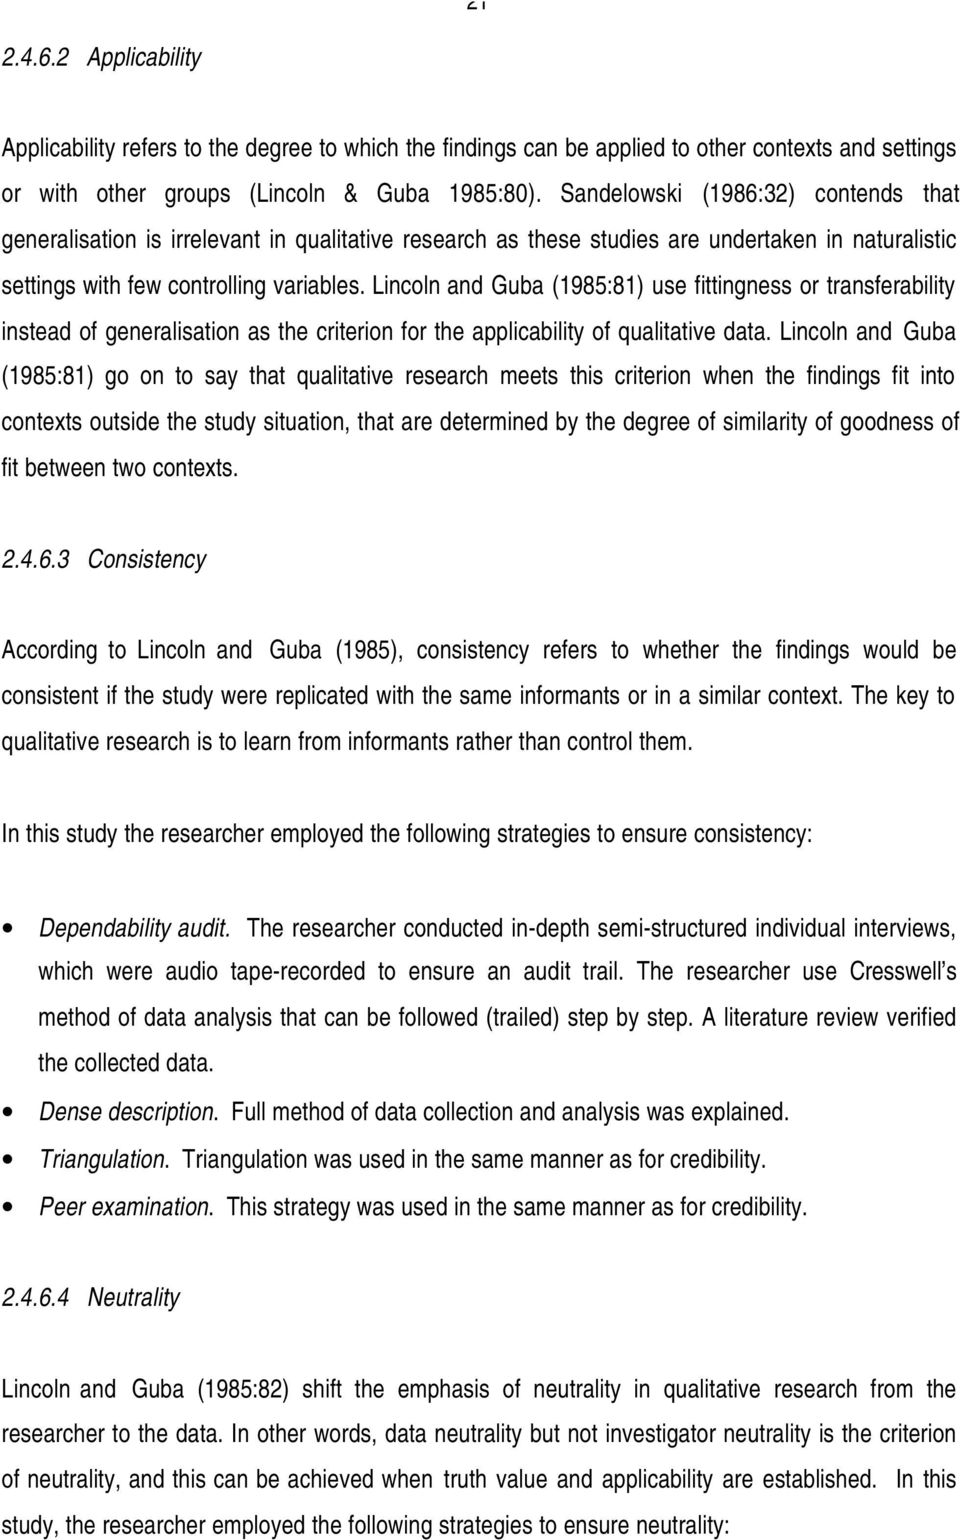 Lincoln and Guba (1985:81) use fittingness or transferability instead of generalisation as the criterion for the applicability of qualitative data.